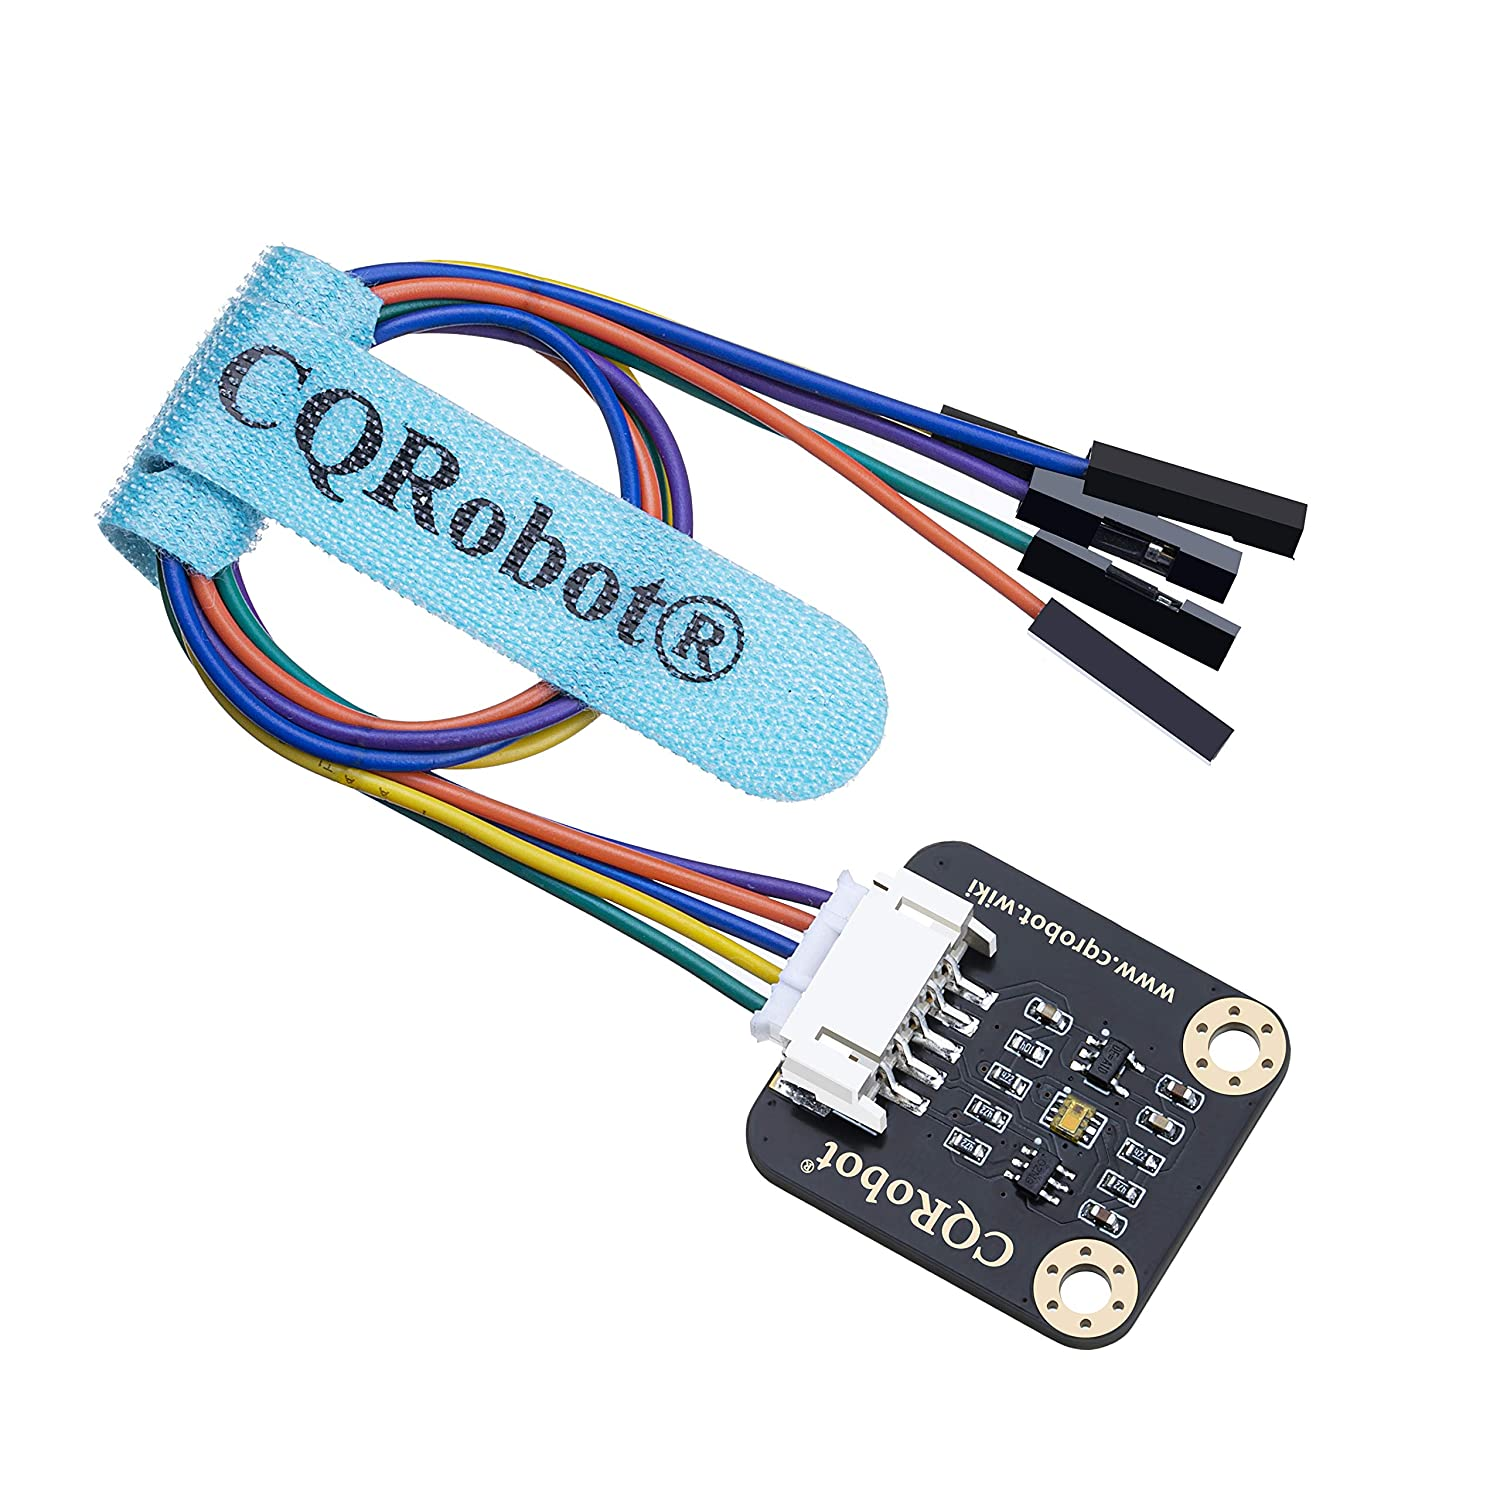 Built-in TSL25911FN chip CQRobot Ambient Light Sensor for Raspberry Pi//Arduino//STM32 Controlled via I2C Interface. Features 600M:1 Wide Dynamic Range Detects Light Intensity up to 88000Lux